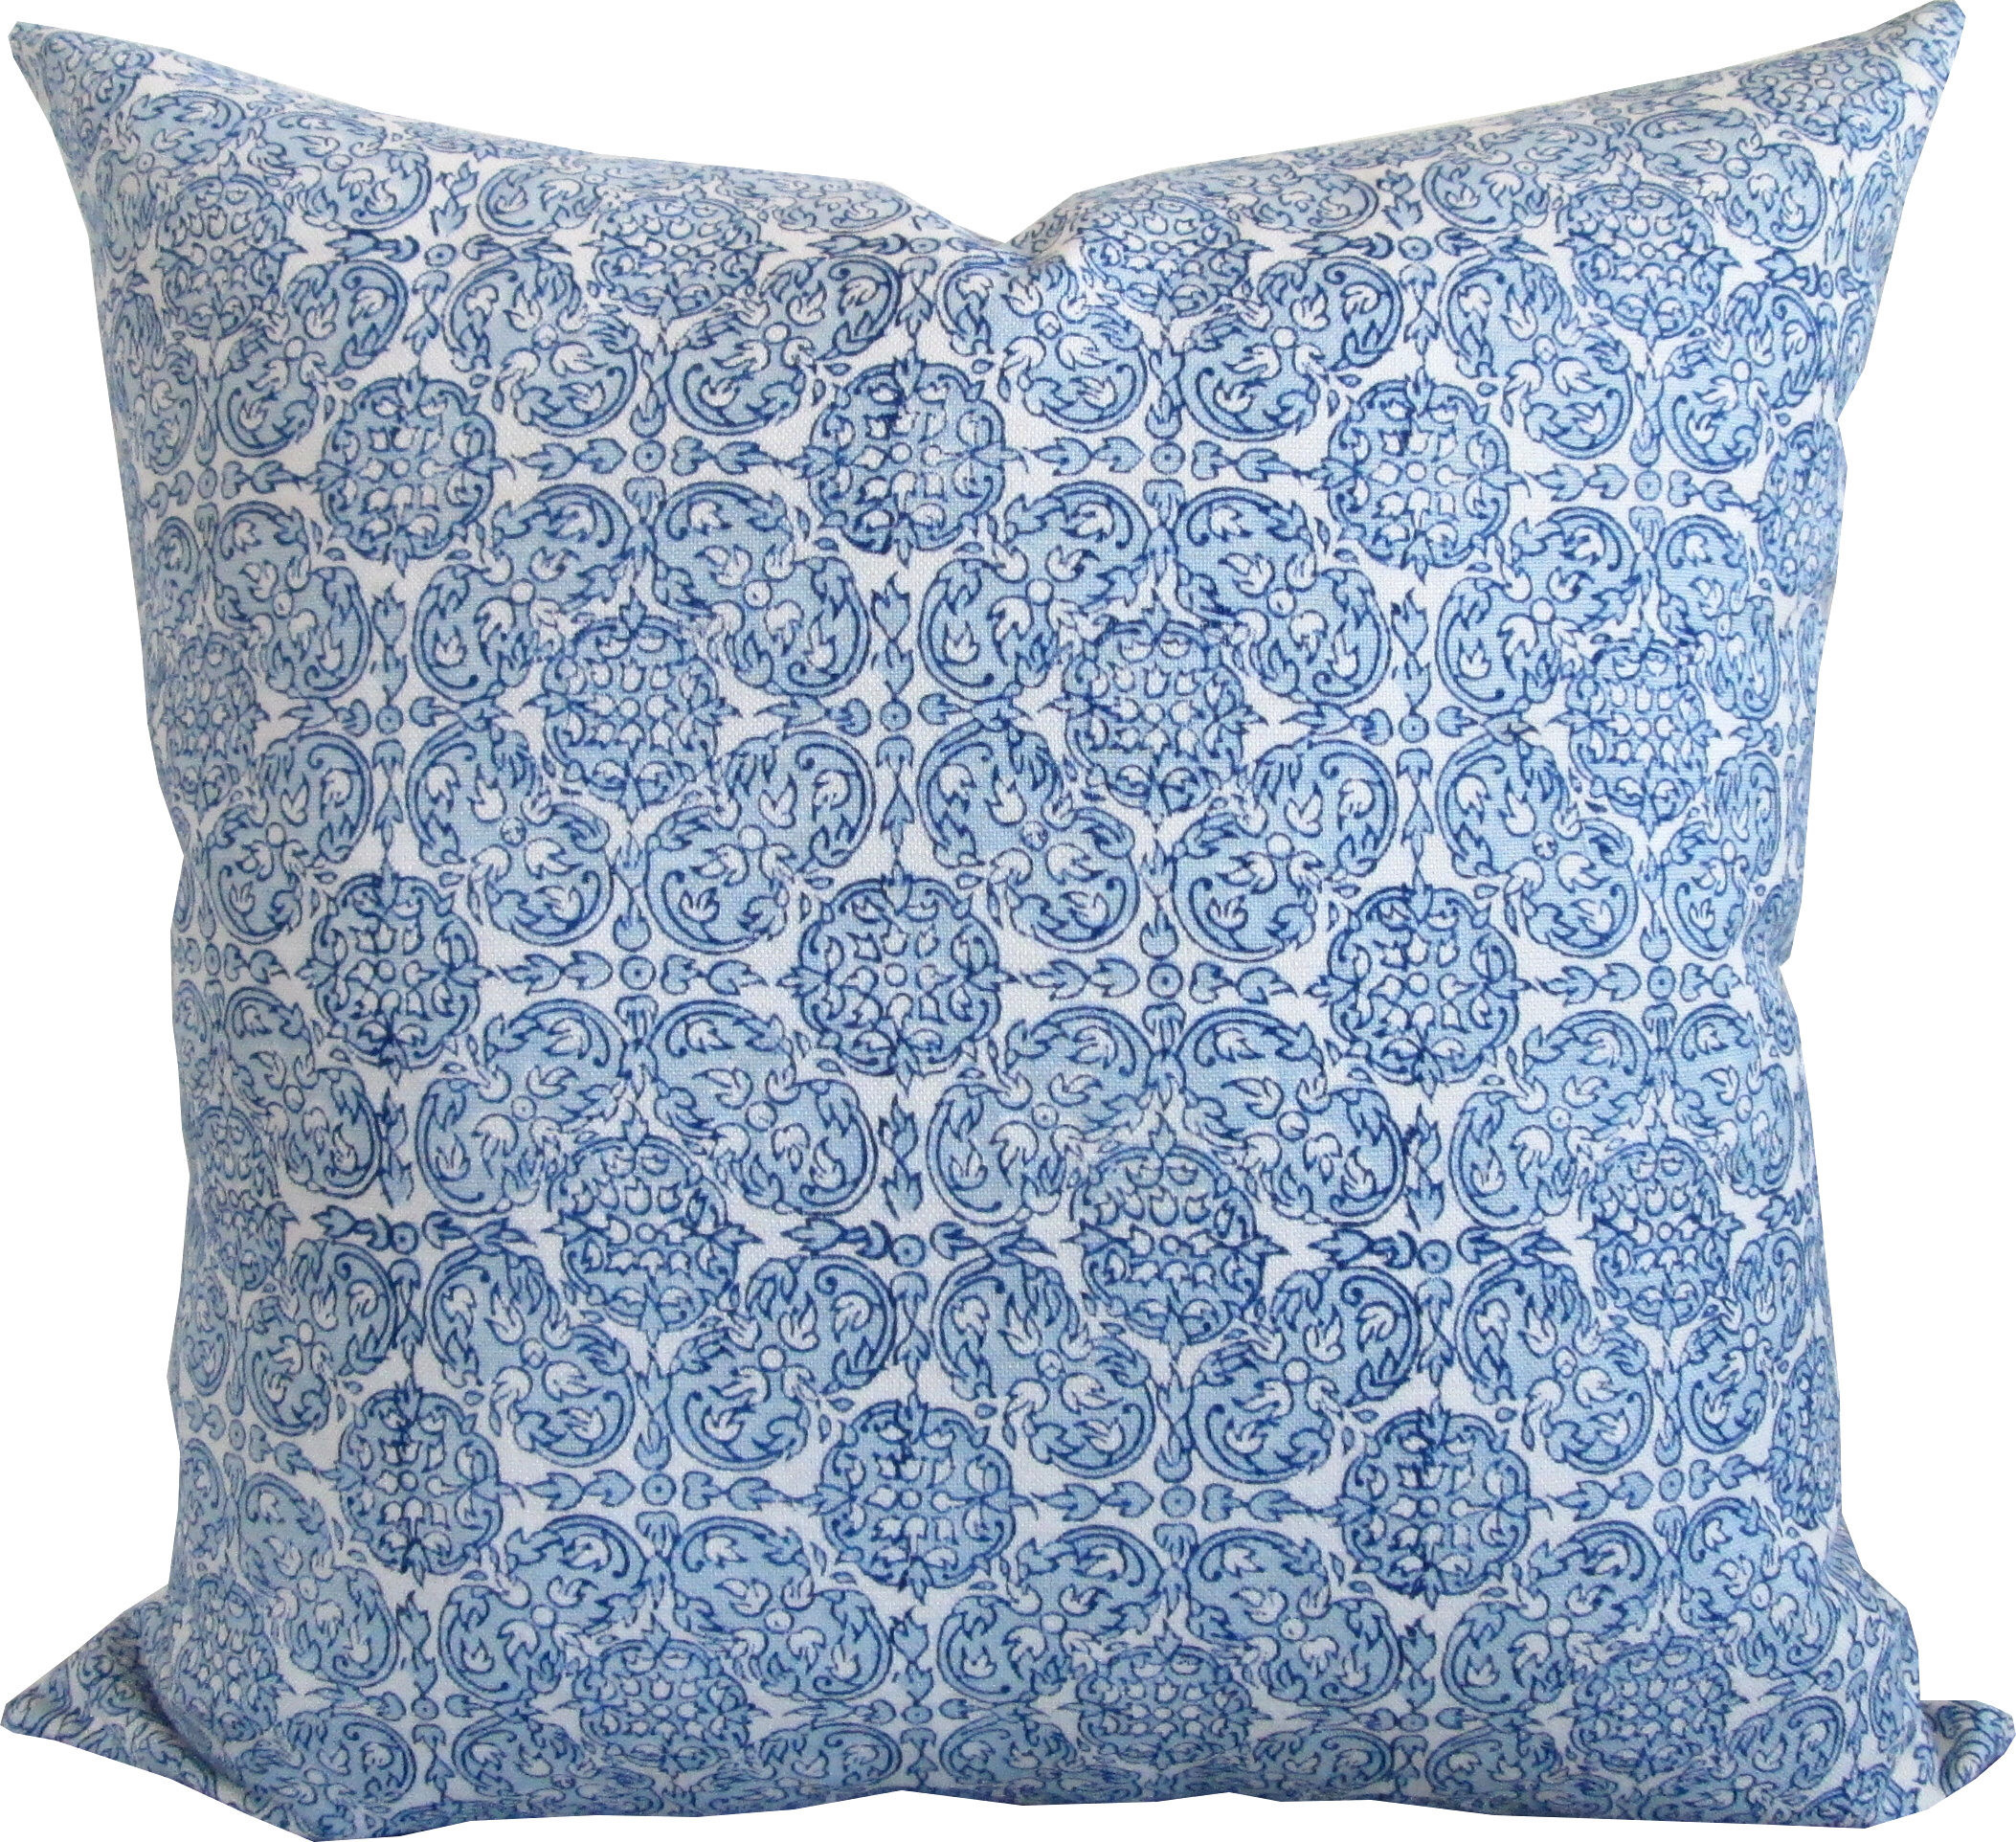 blue decorative vases of dark green pillows new cool vases flower vase coloring page pages for dark green pillows unique mandu lapis high end designer decorative pillow cover accent pillow of dark